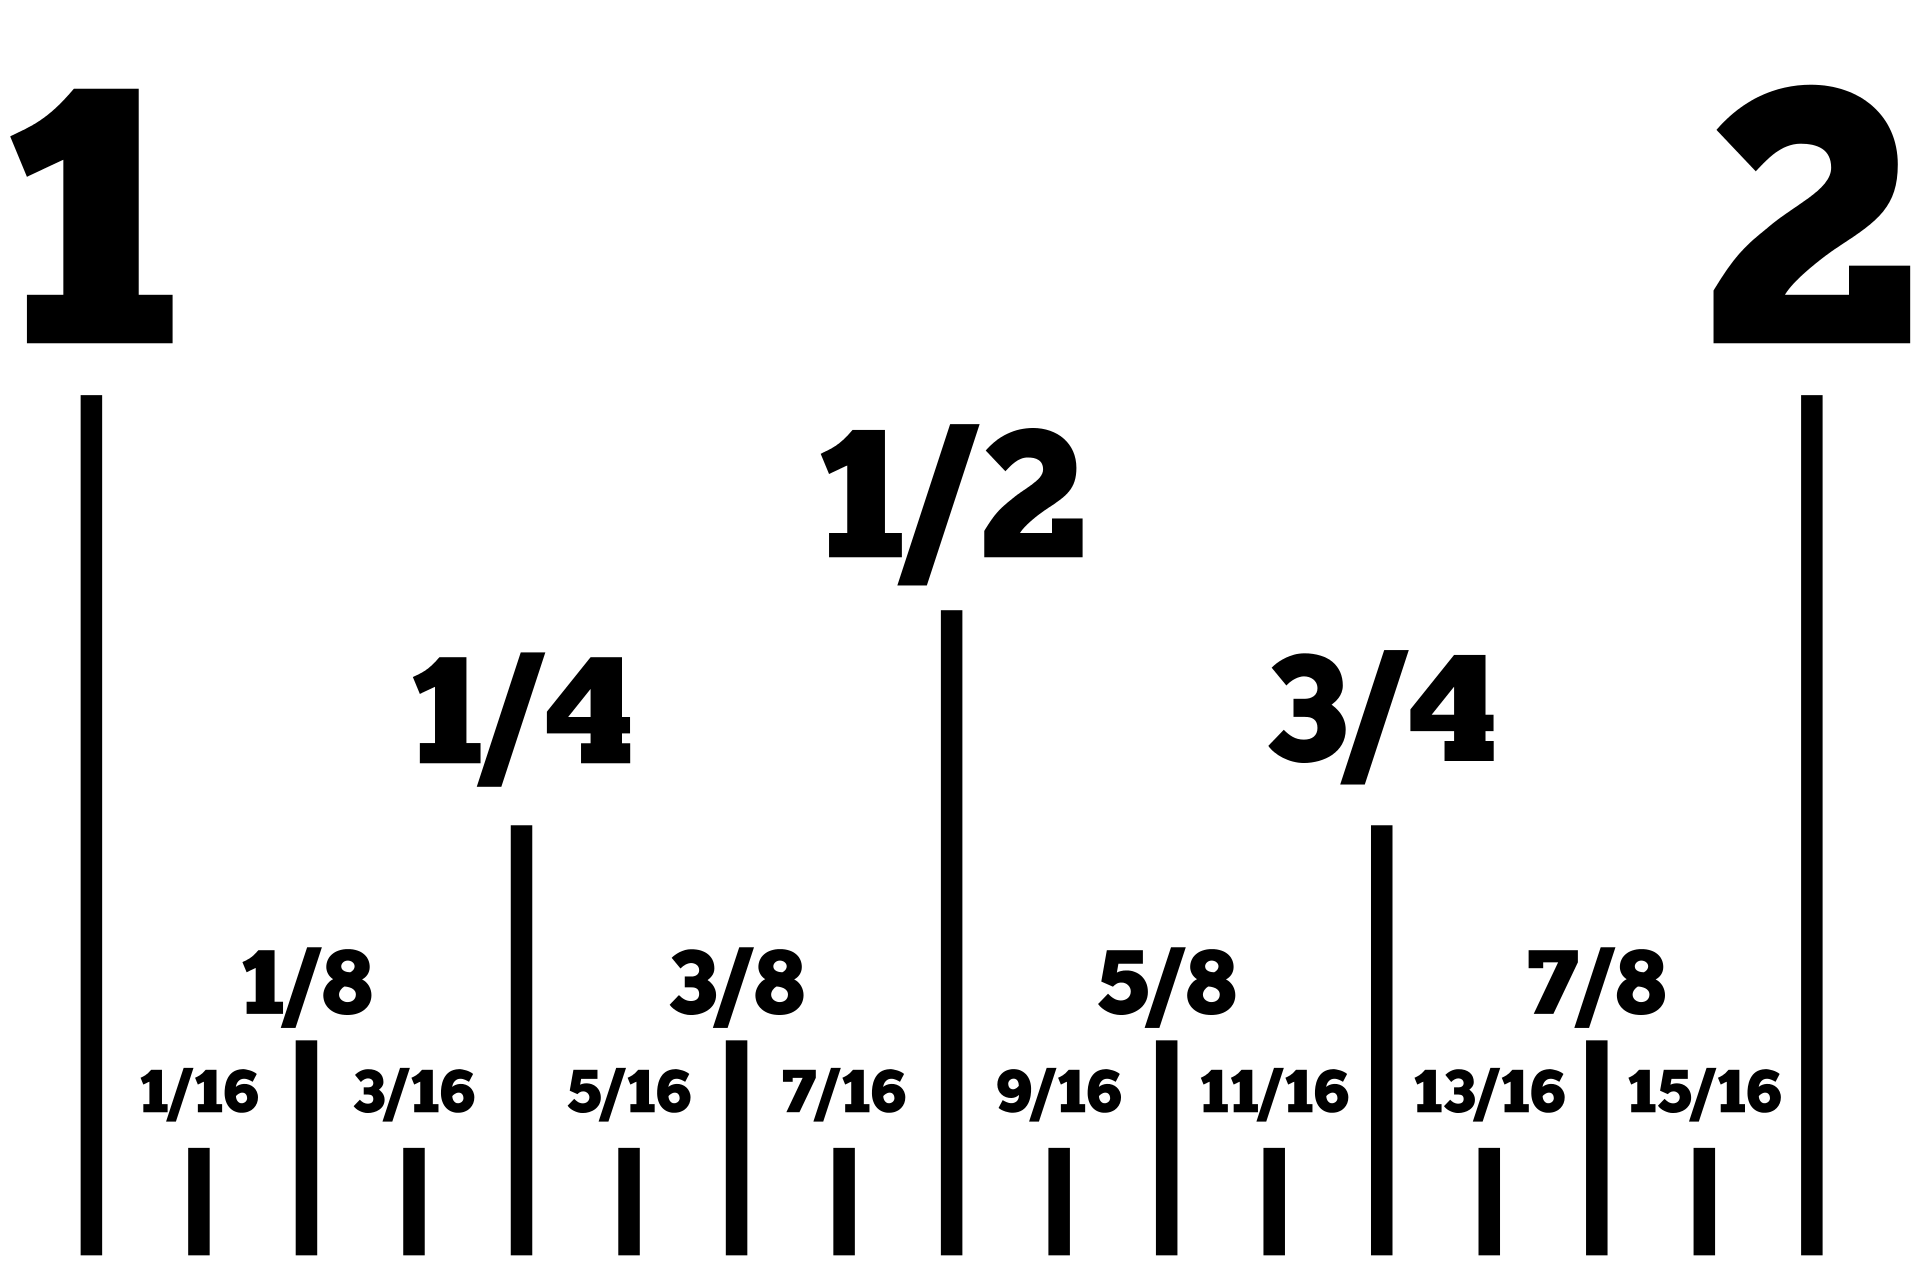 Diagram Showing Fractions Of An Inch On A Standard